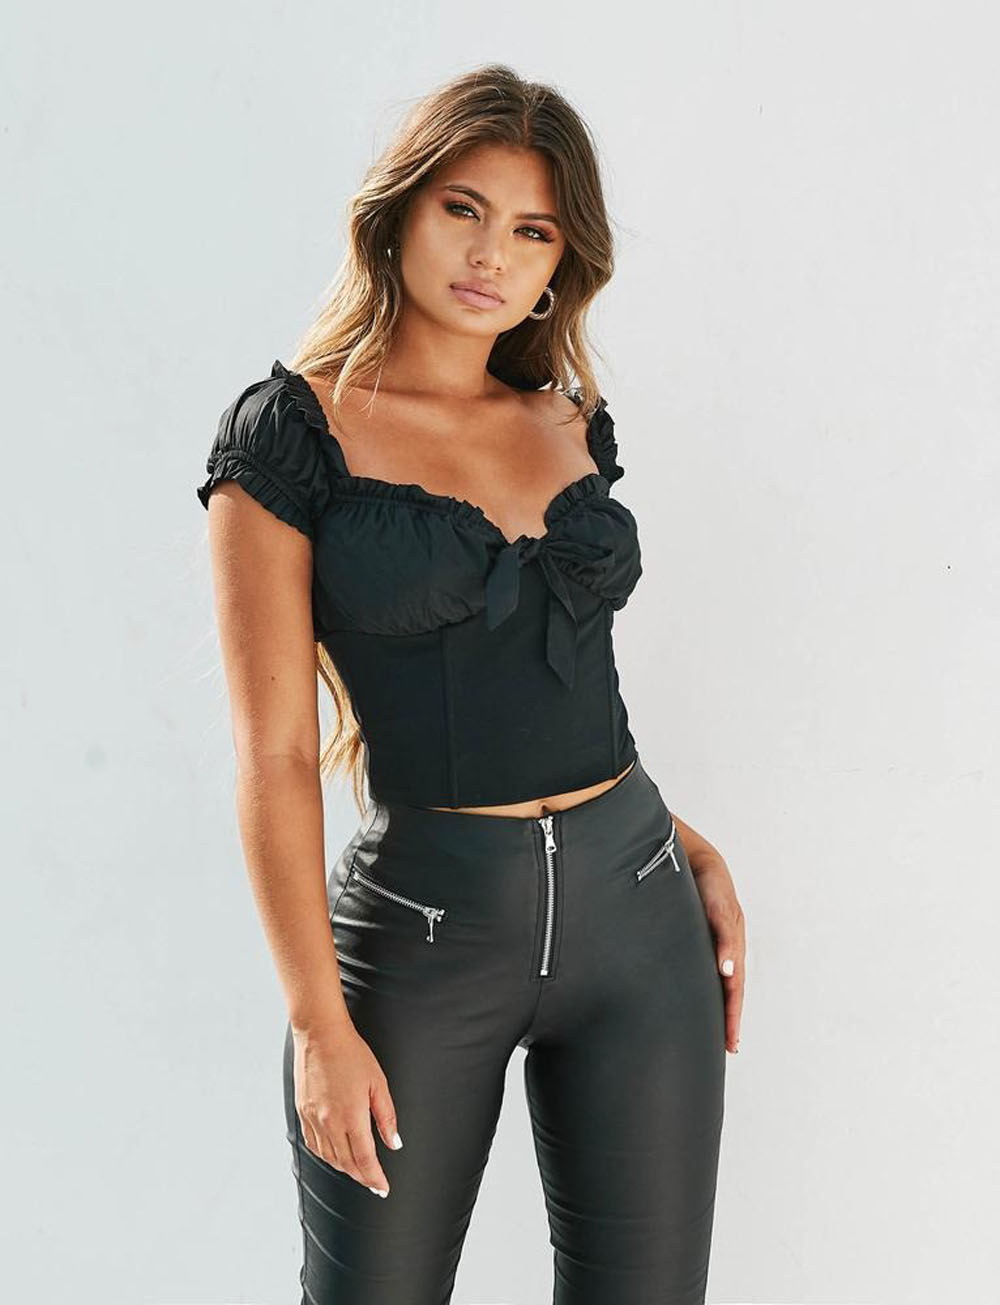 Women Sexy Off Shoulder Casual Bralet Tank Top Fashion Crop Top Ladies Vest Crop Cami Tops Women's Clothes Summer 2019